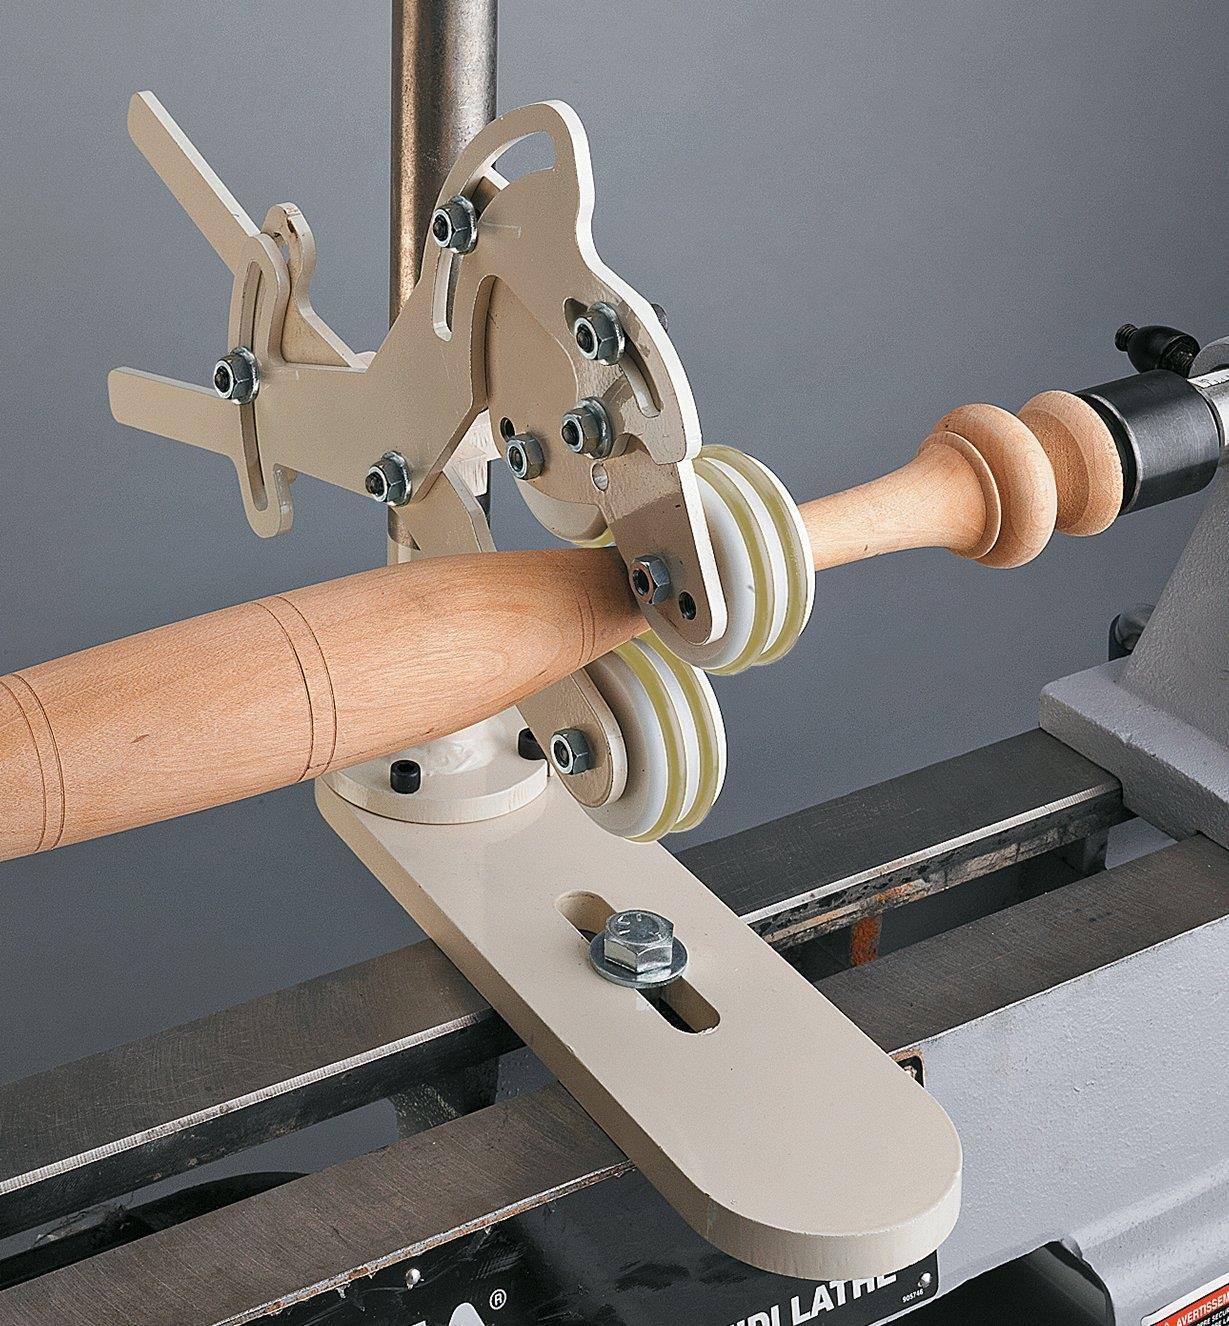 Spindle Steady supporting a spindle on a lathe